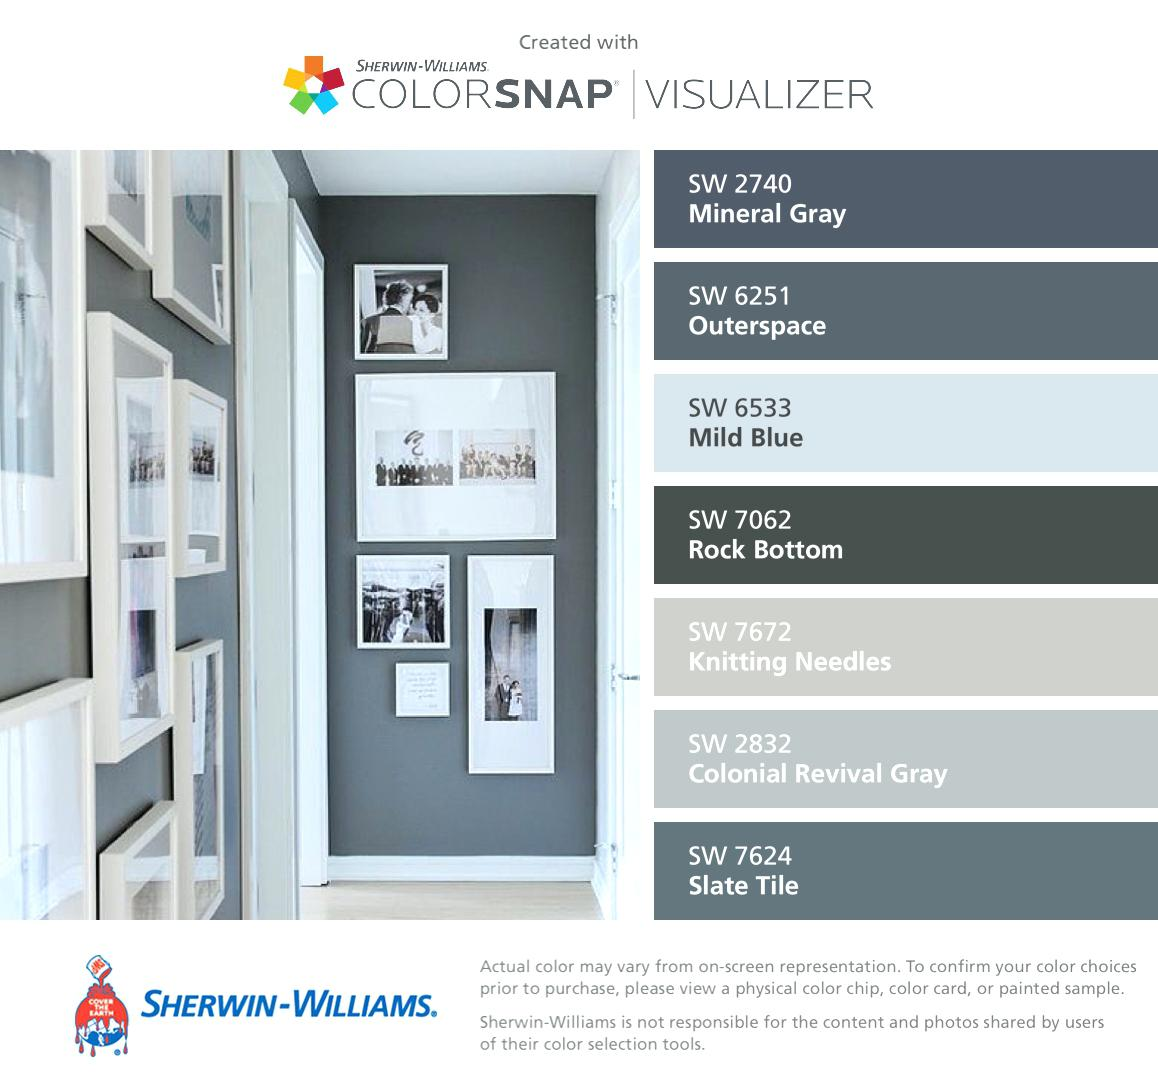 Sherwin Williams Color Visualizer App | Color Visualizer | Siding Visualizer